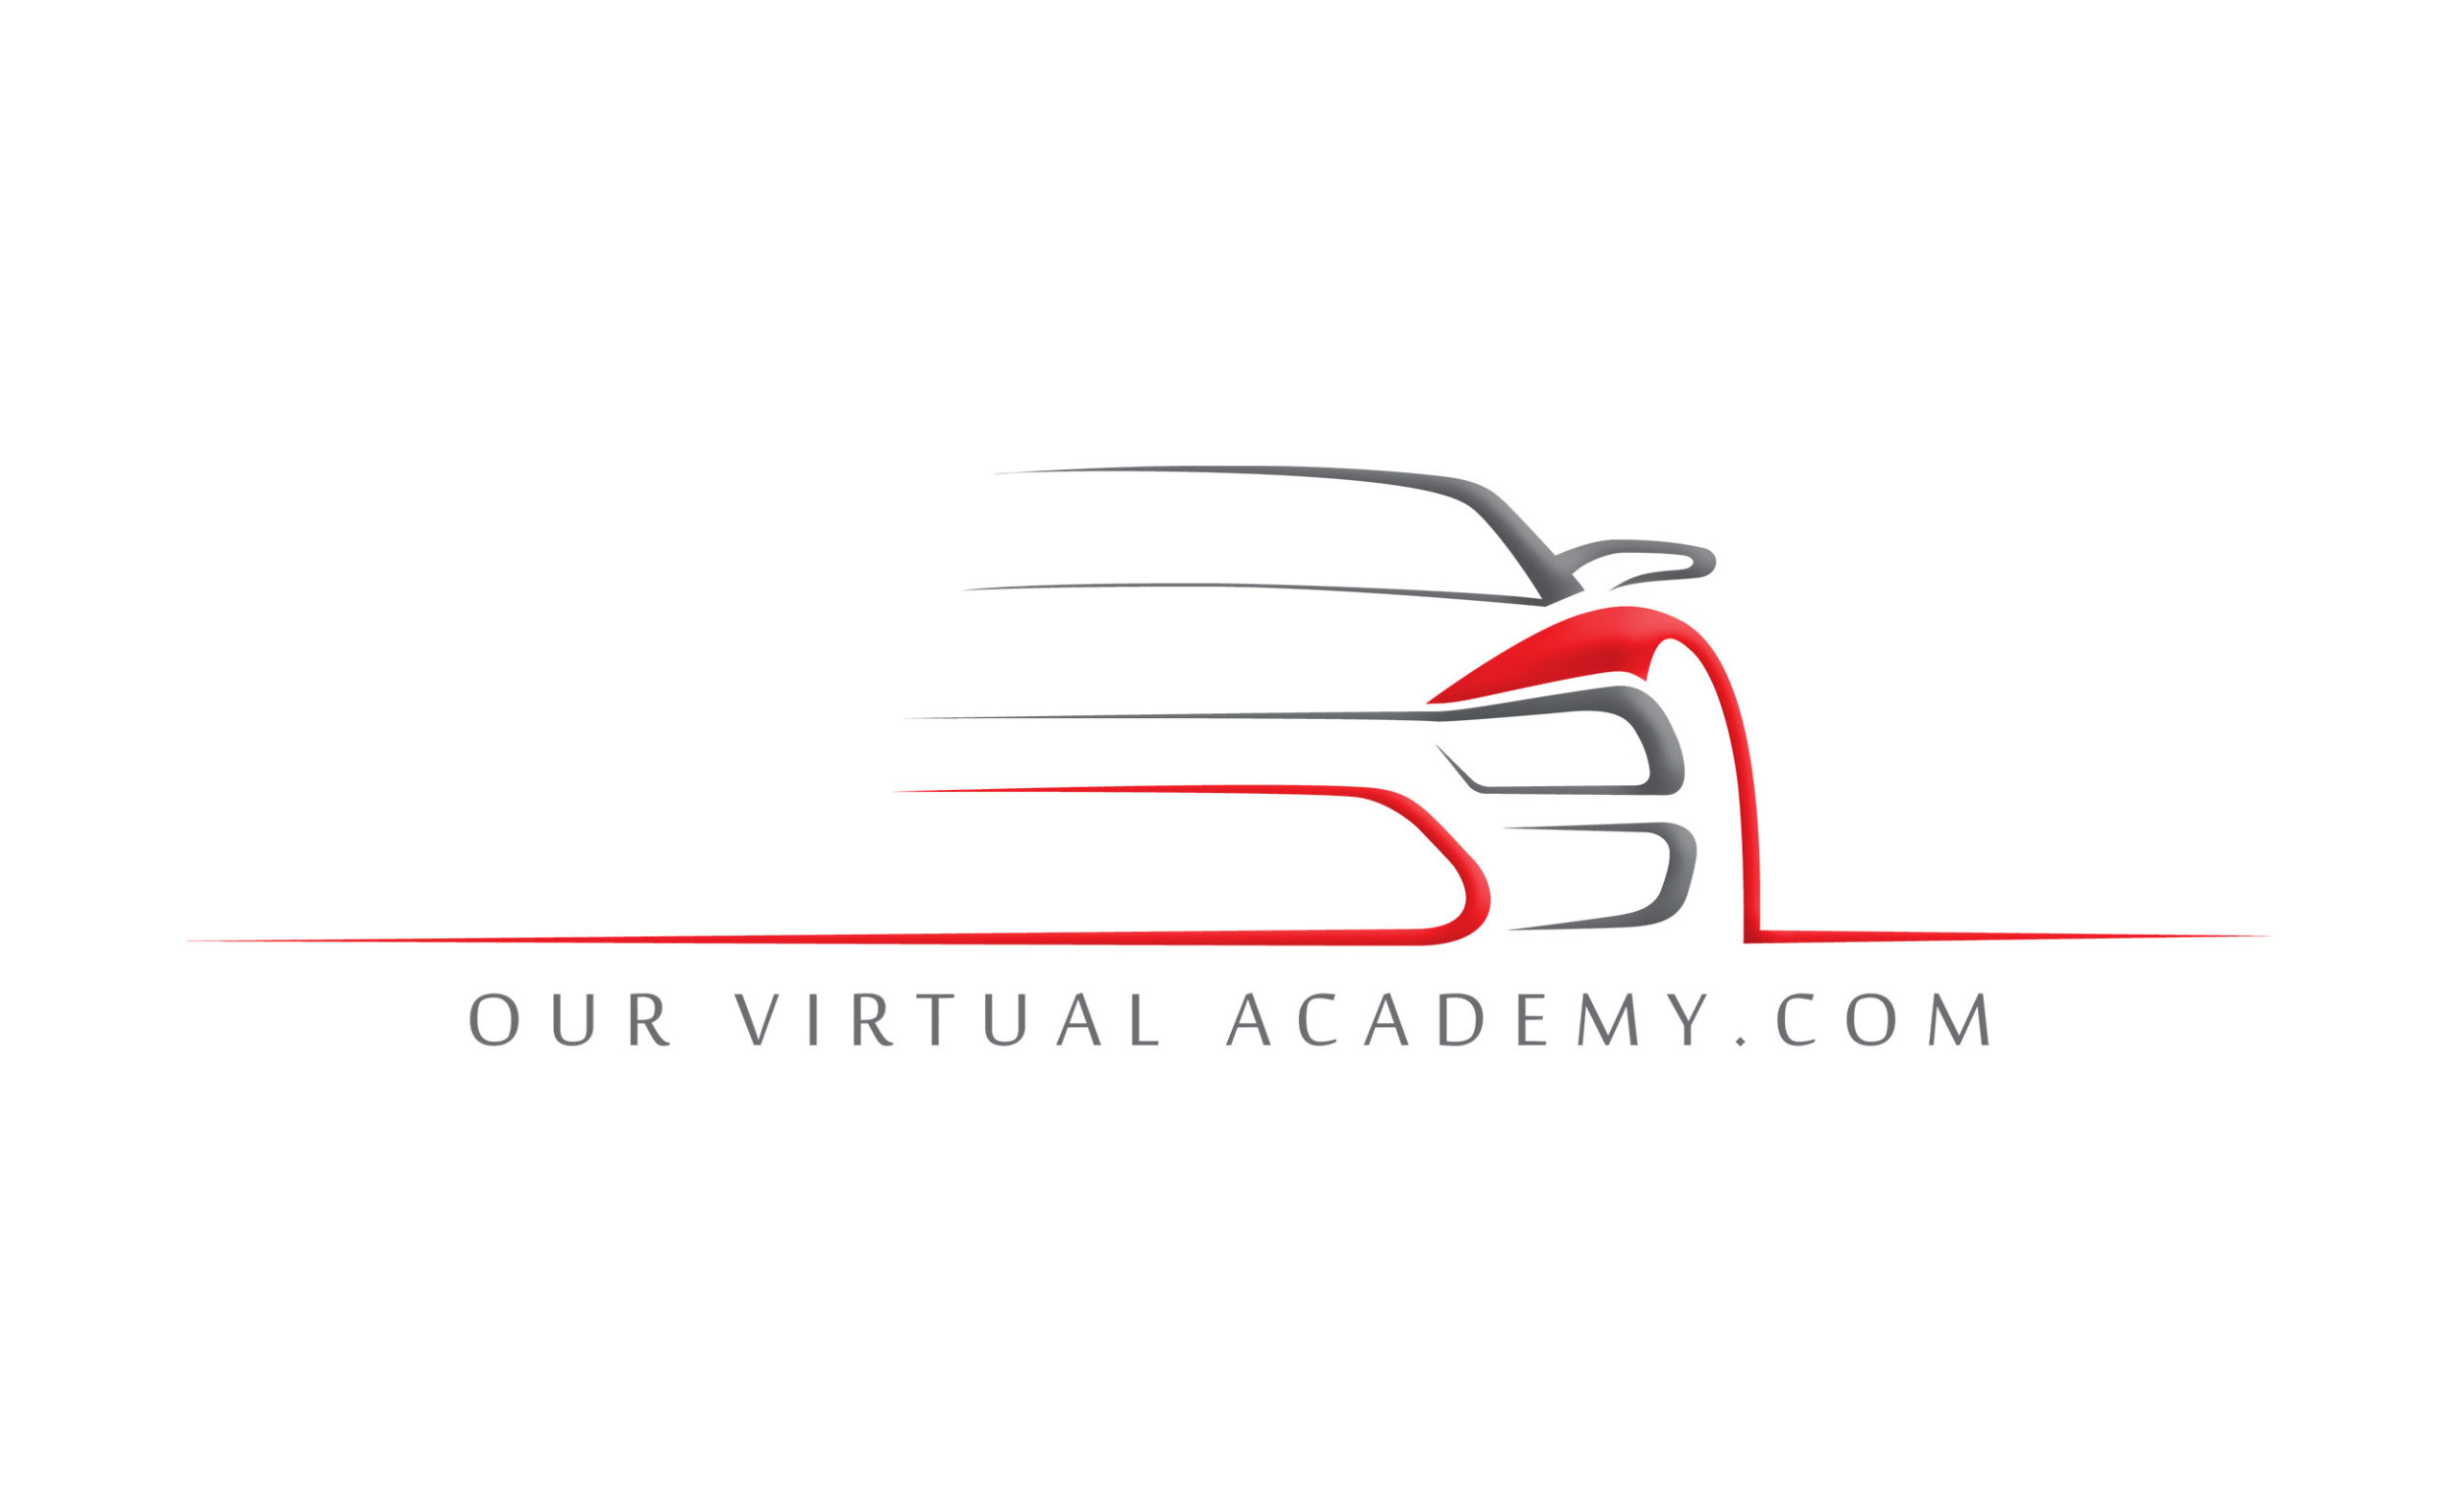 Our Virtual Academy